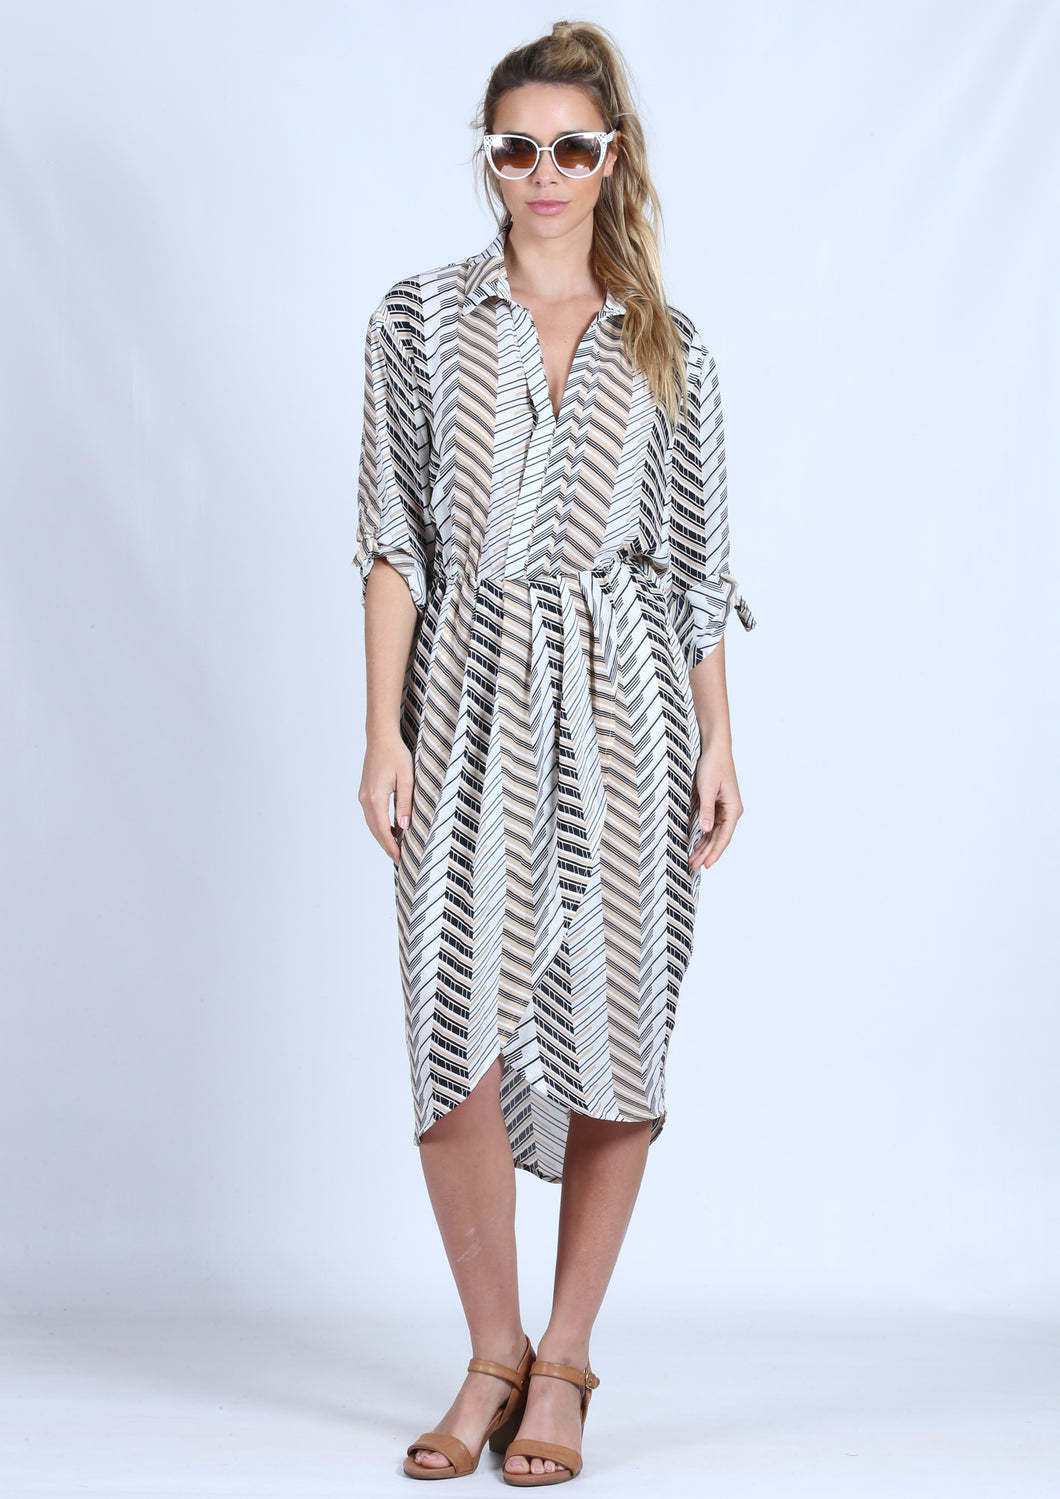 LV313-8SS Shirt Dress With Tuliped Detail (Pack)